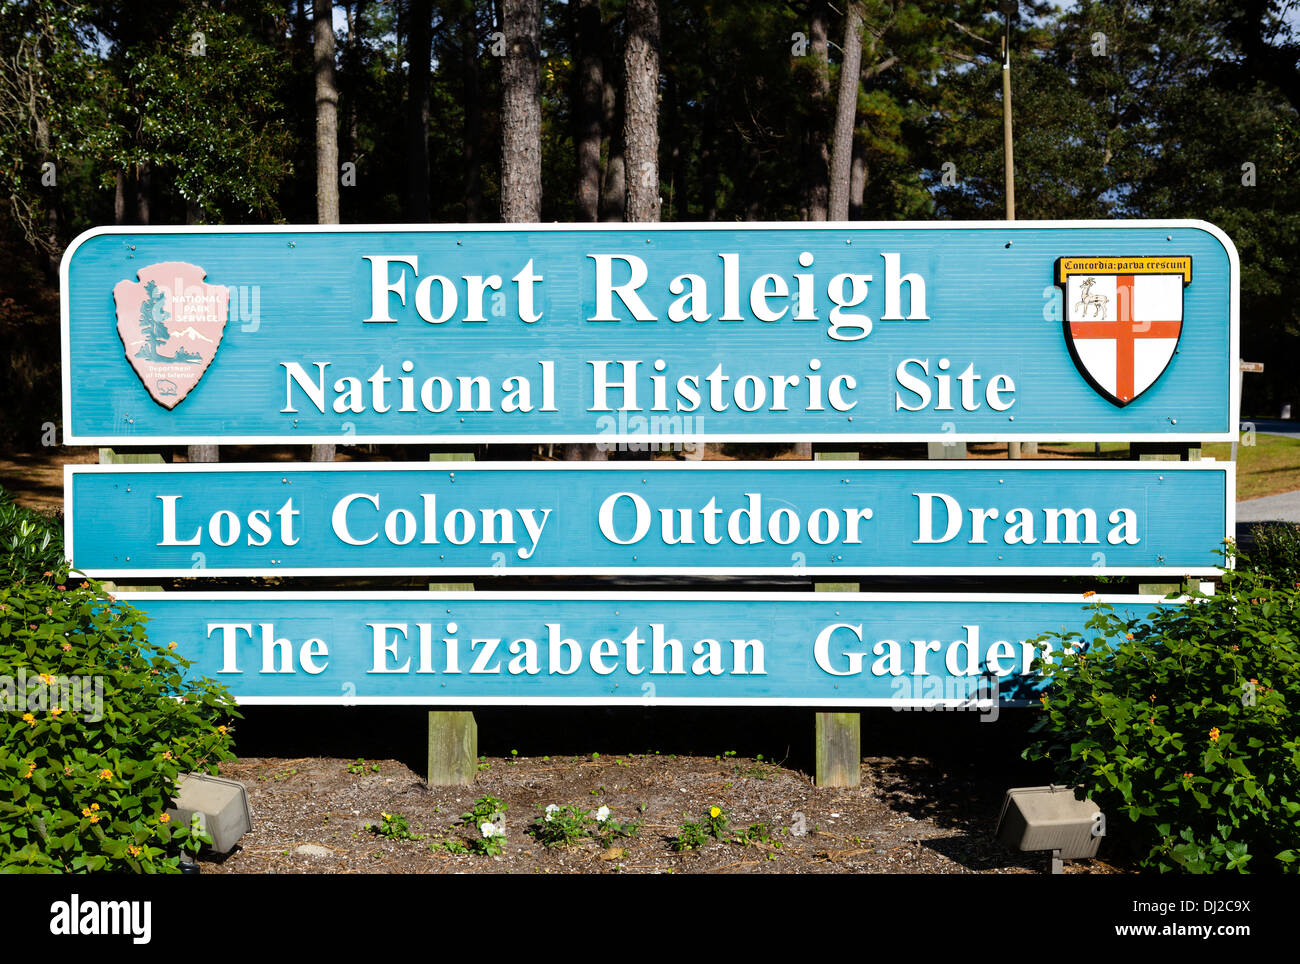 Entrance sign to Fort Raleigh National Historic Site, Roanoke Island, North Carolina, USA Stock Photo